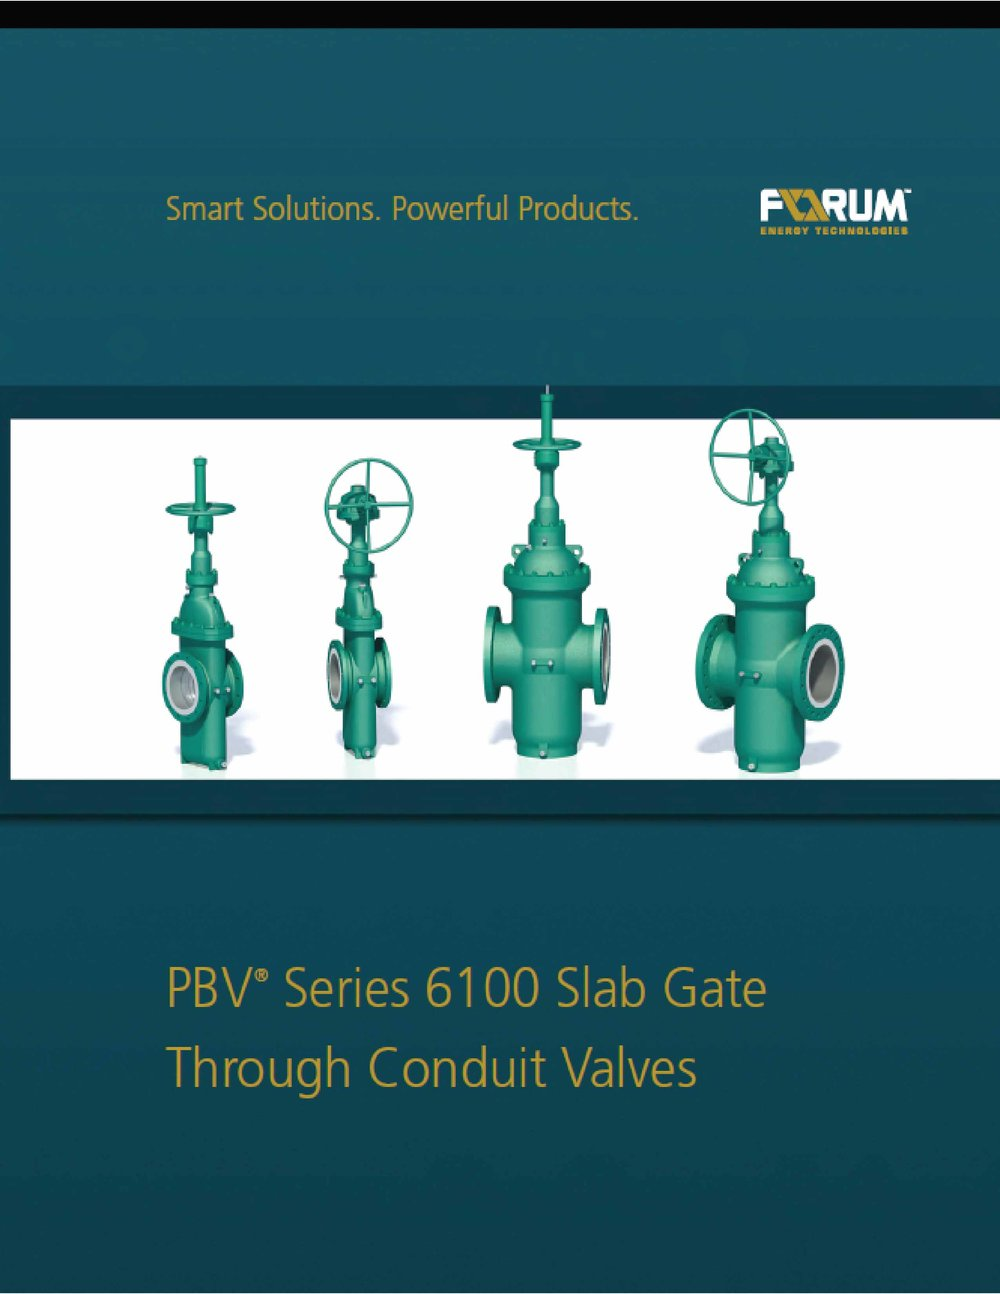 PBV_slab gate brochure-01.jpg